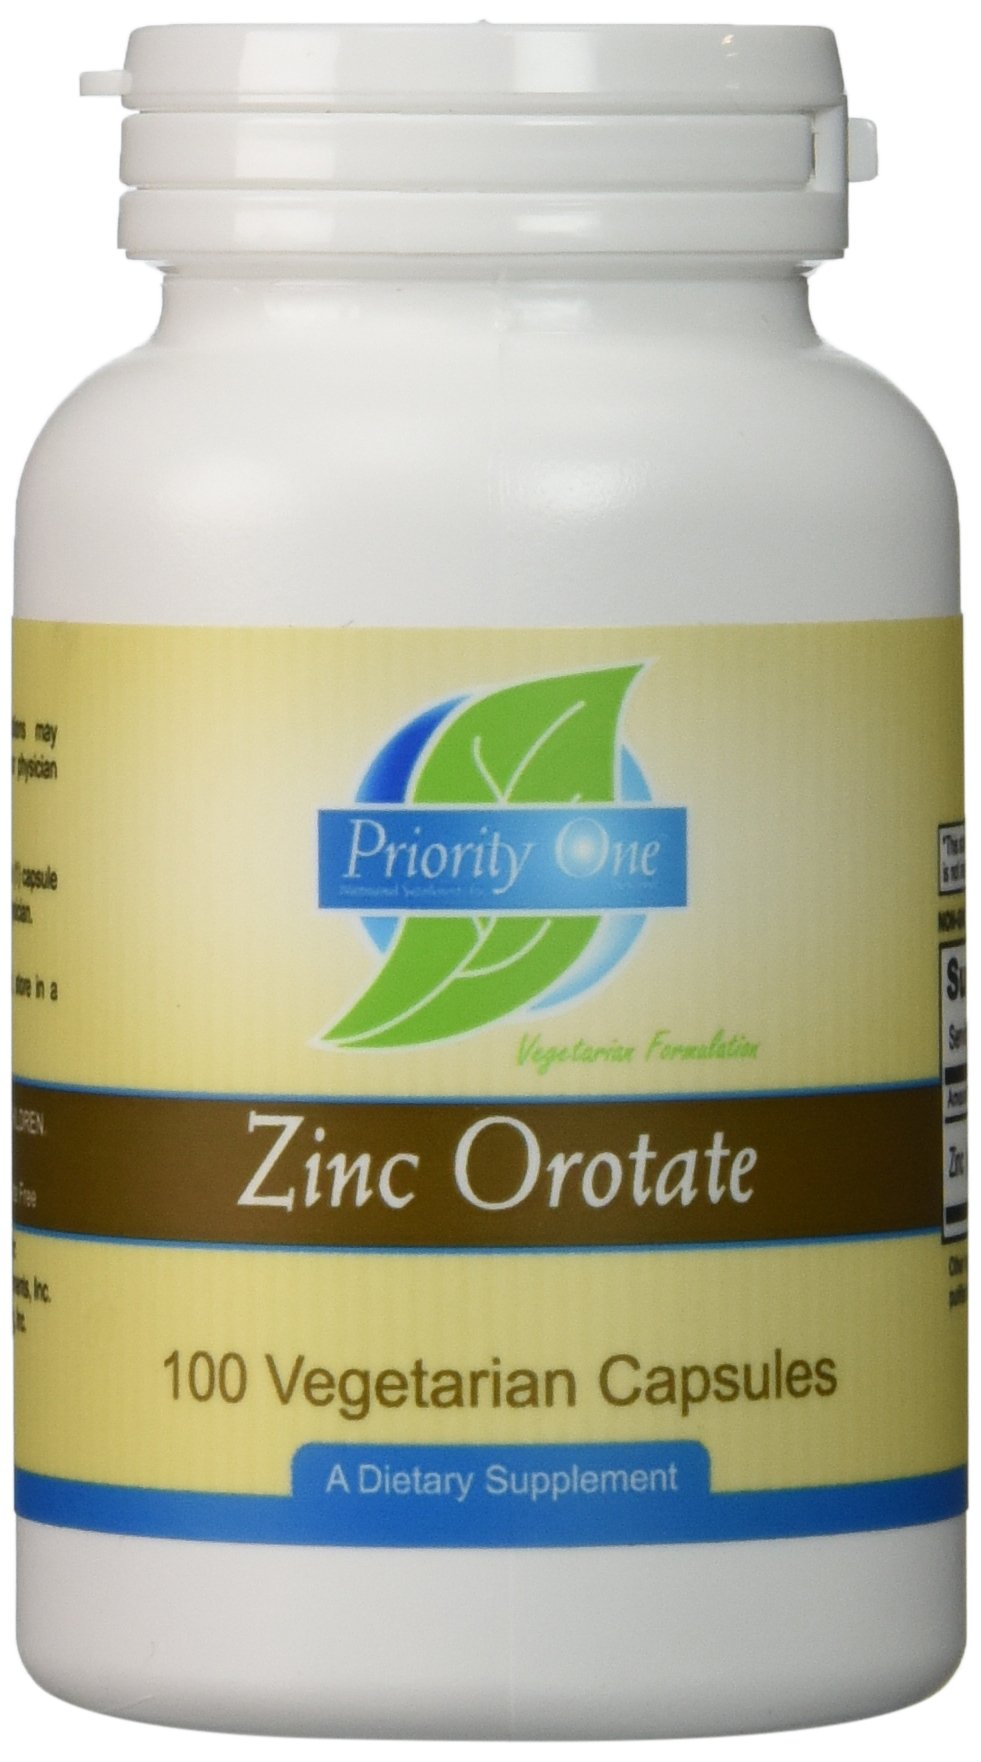 Priority One Vitamins - Zinc Orotate 100 caps [Health and Beauty]